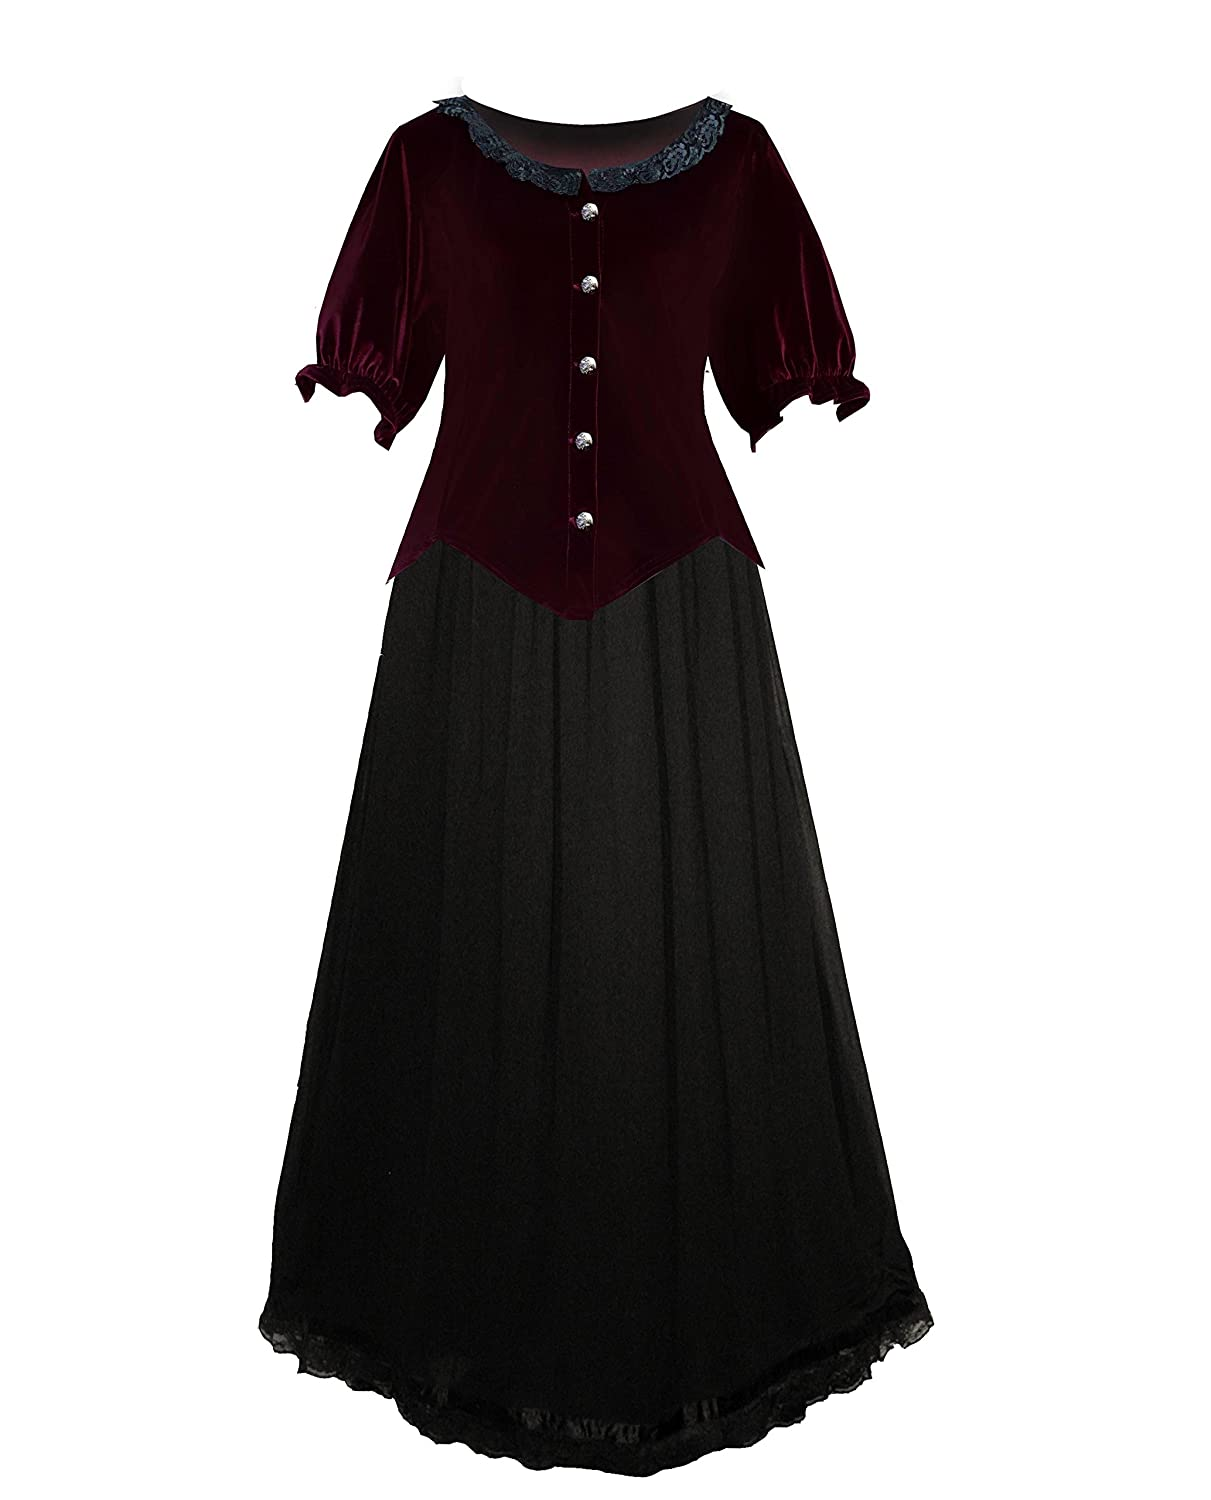 Plus Size Vintage Dresses, Plus Size Retro Dresses Victorian Steampunk Gothic Renaissance Velvet Top & Long Skirt $89.00 AT vintagedancer.com